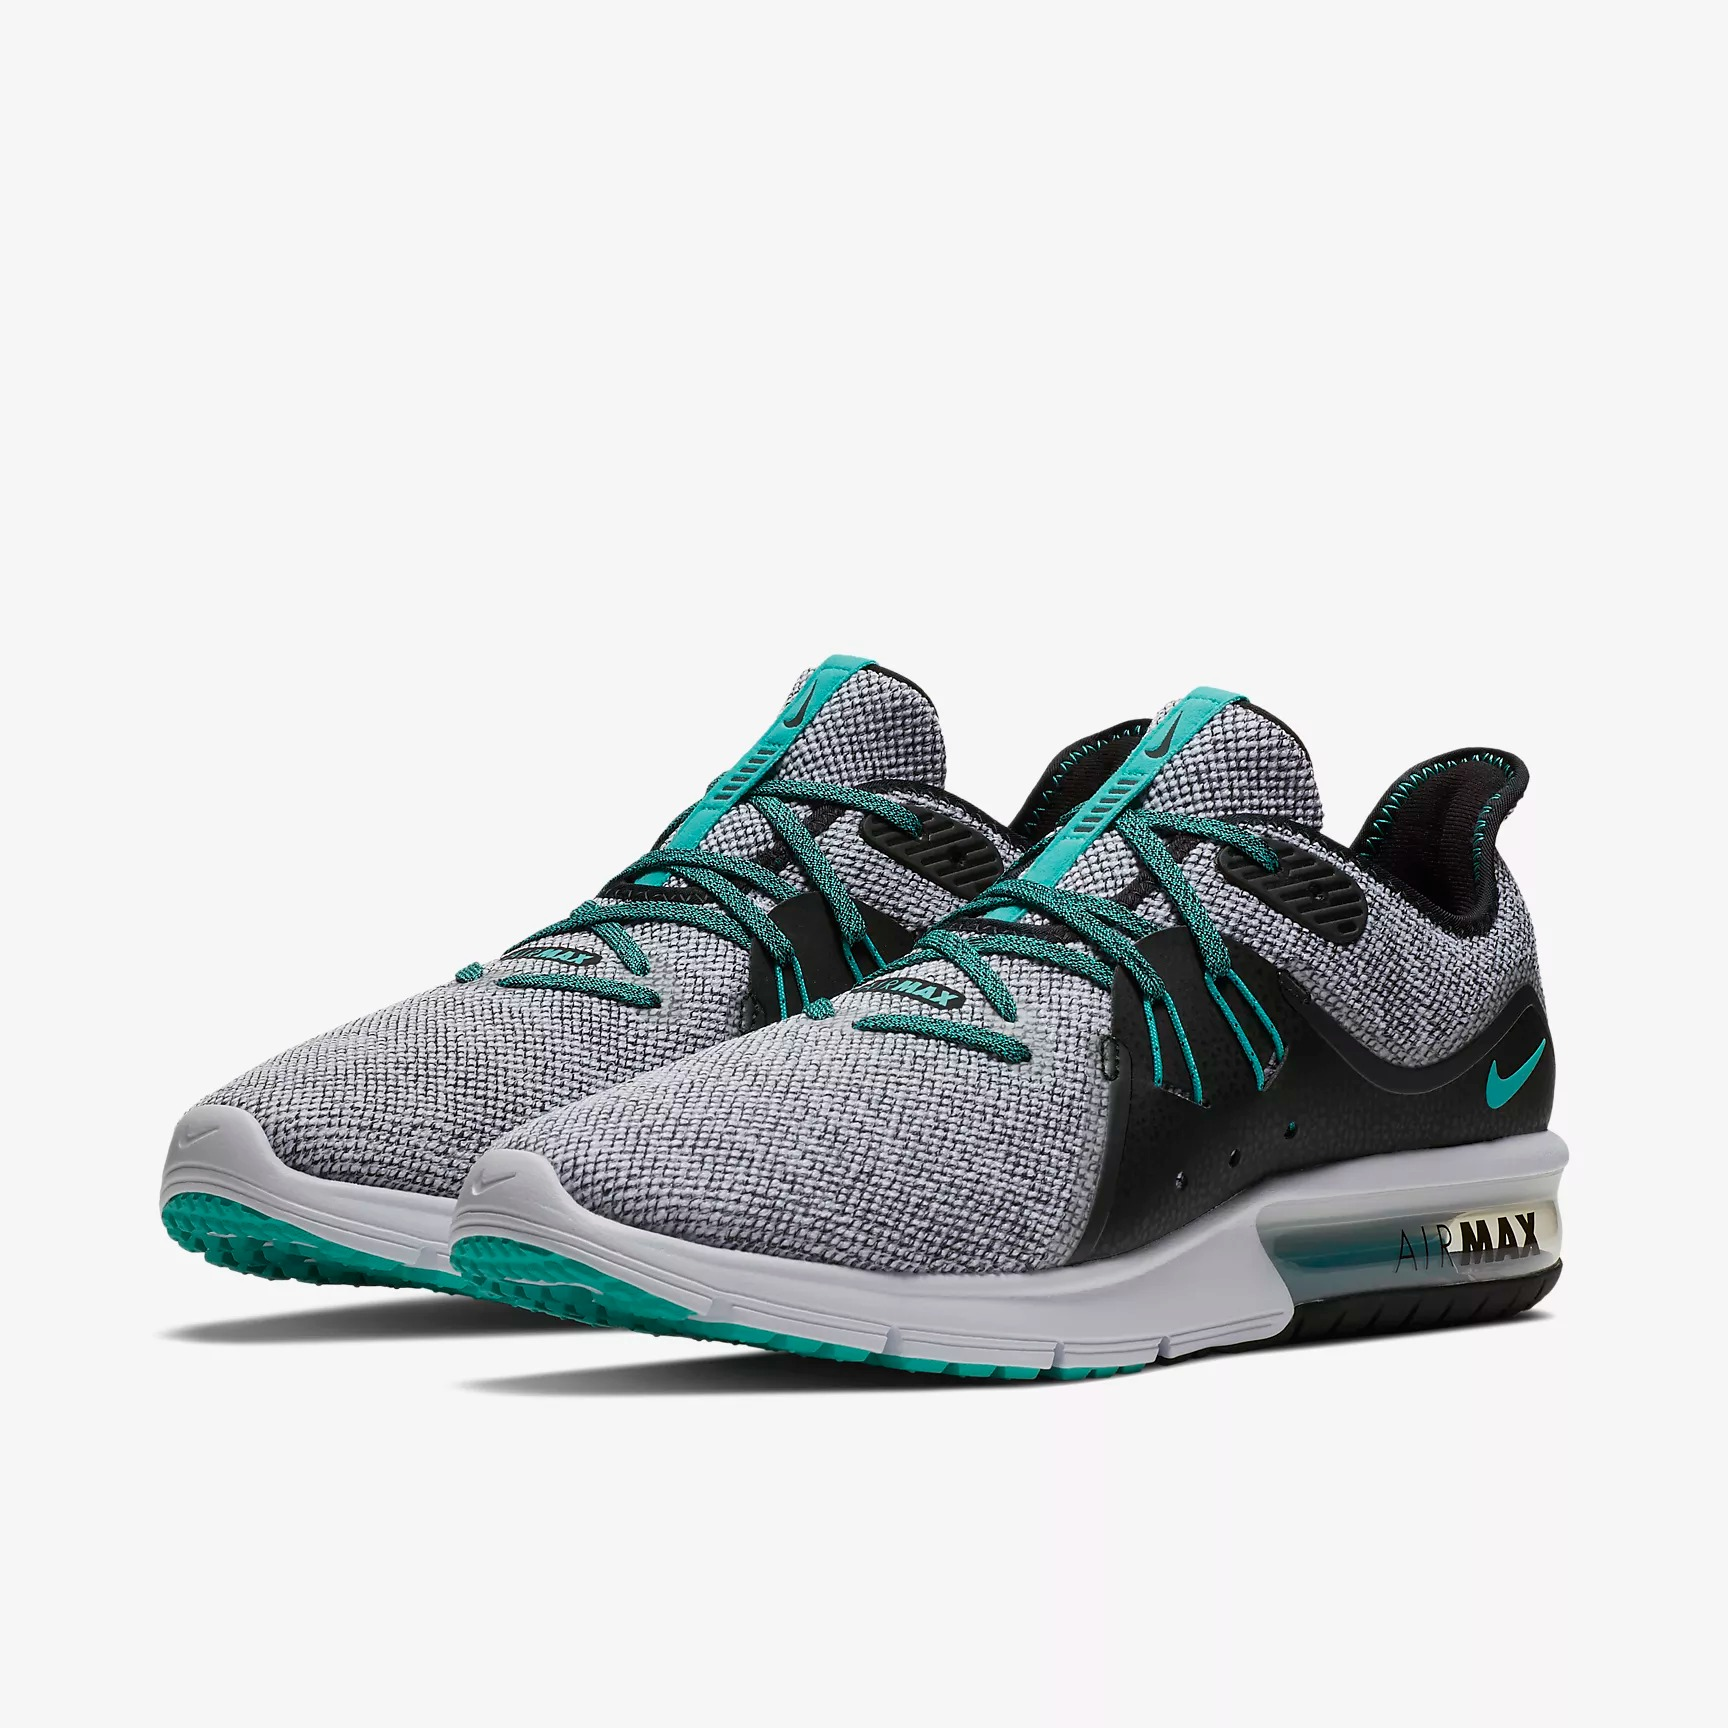 ff6b46c6501 Nike Air Max Sequent 3 Running Shoes - SPORT SHOES RUNNING SHOES ...